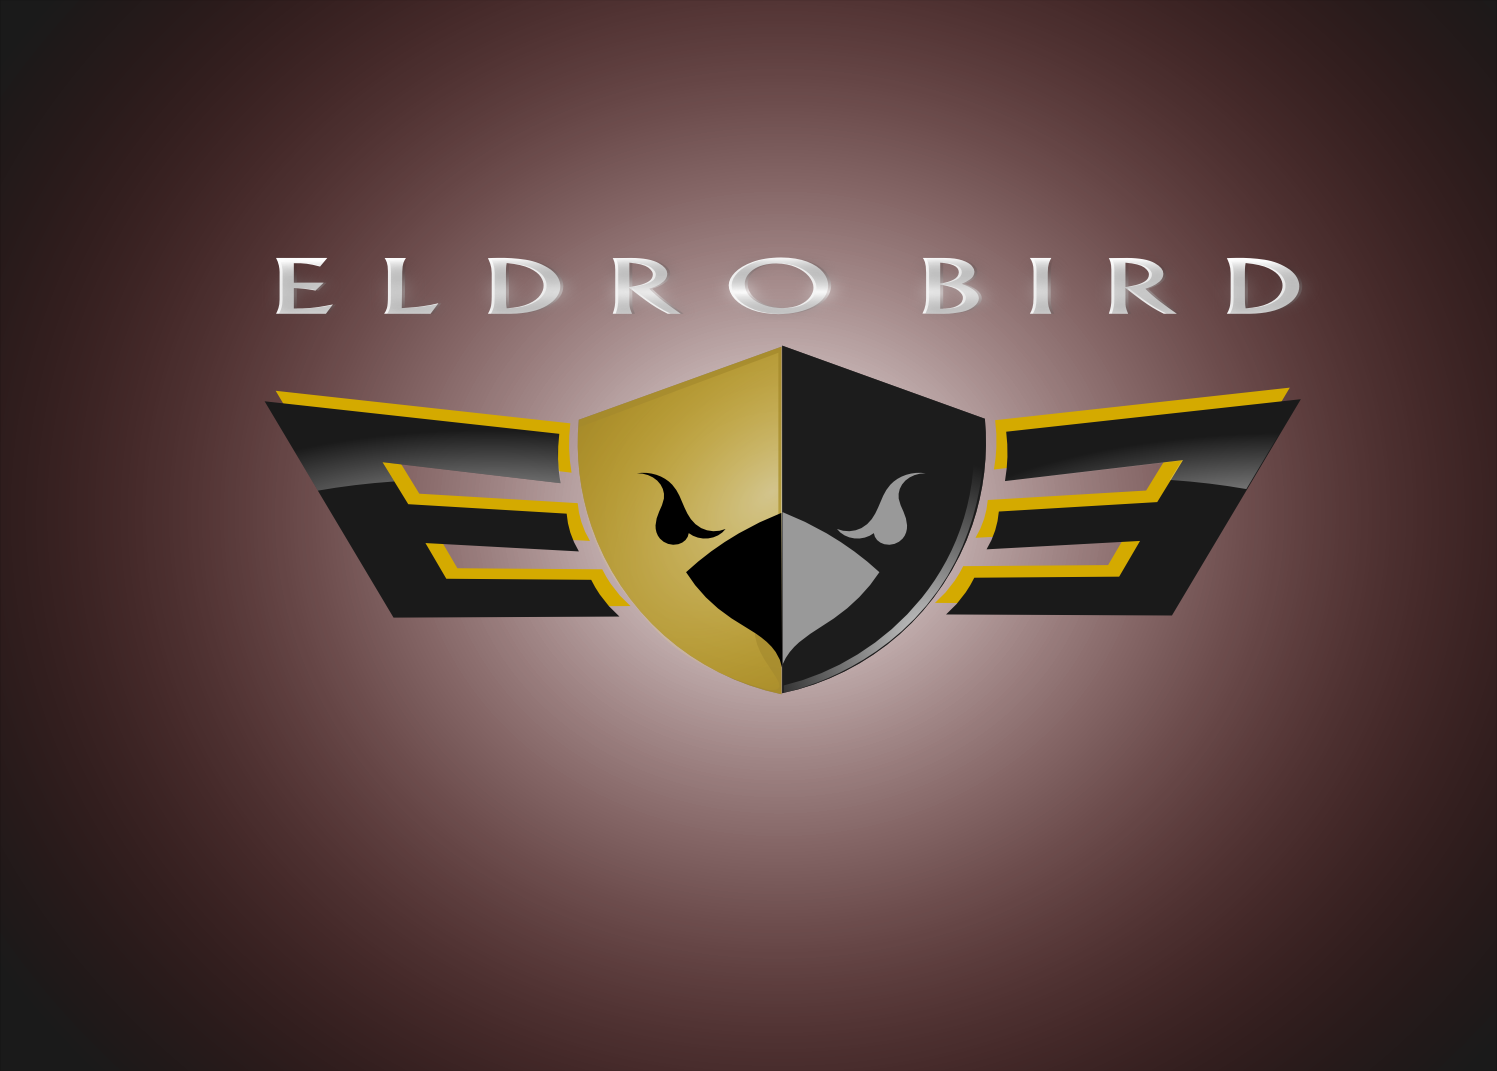 Logo Design by Joseph calunsag Cagaanan - Entry No. 67 in the Logo Design Contest New Logo Design for Bird car.